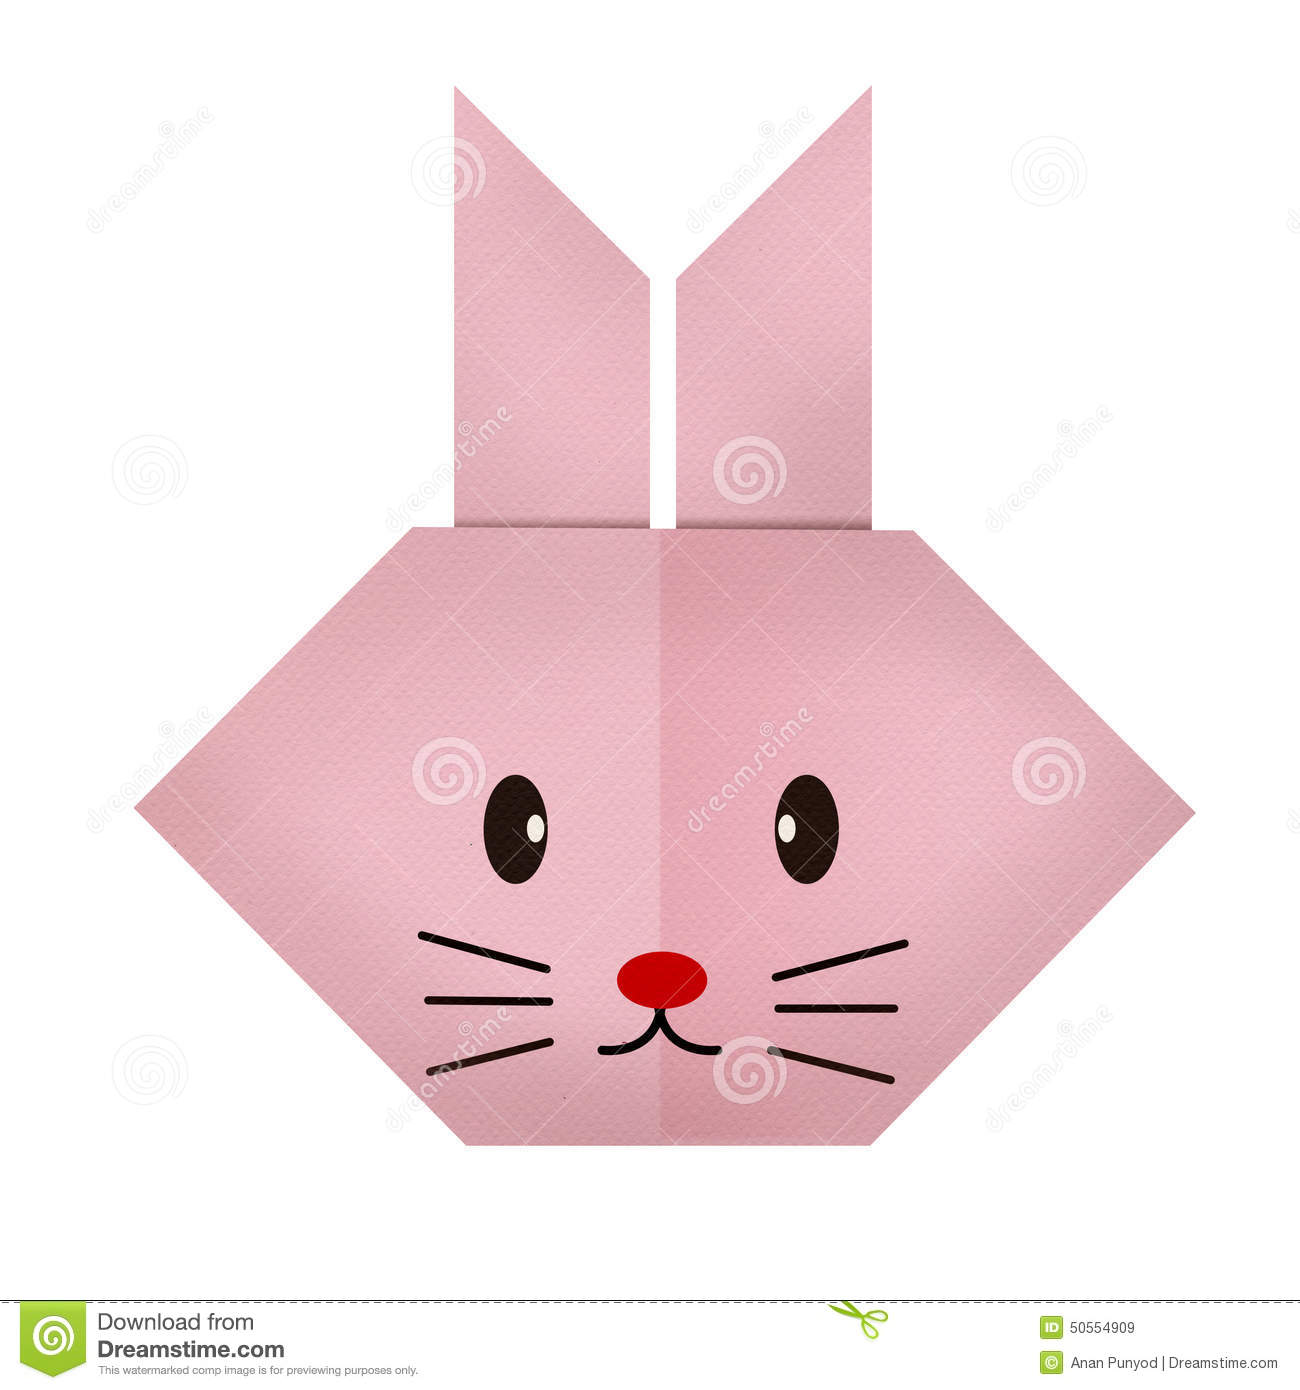 Colorful Animal Print Wallpaper Origami Paper A Rabbit Face Stock Photo Image 50554909